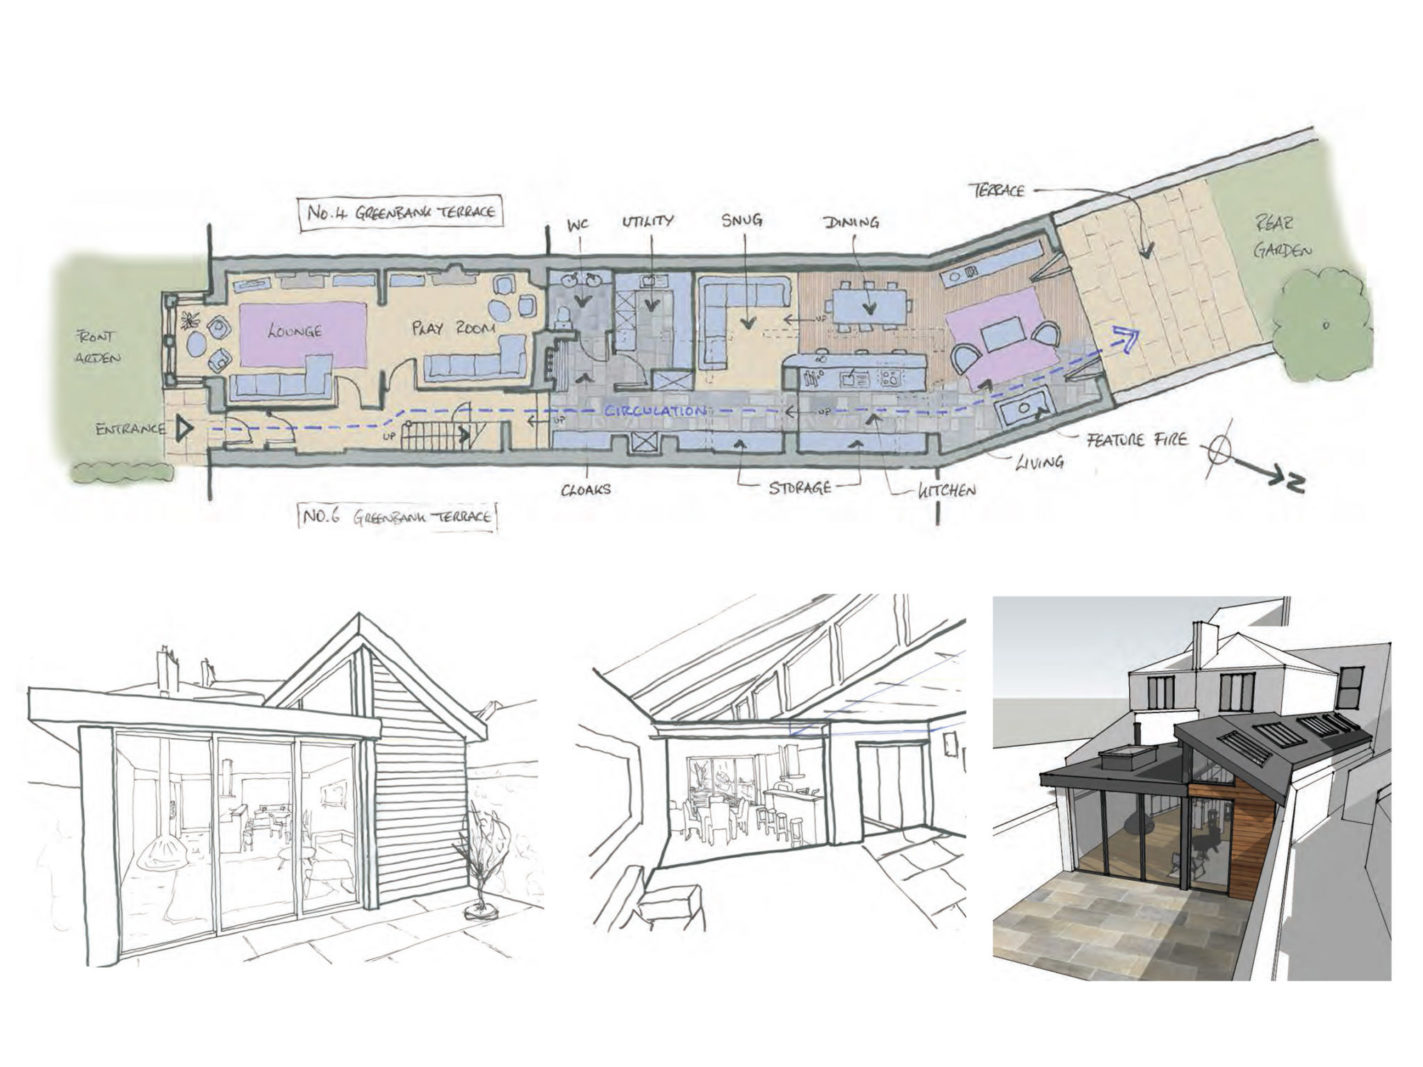 5 Greenbank Terrace, Yelverton project wins Planning approval. – Rud Sawers Architects, Devon